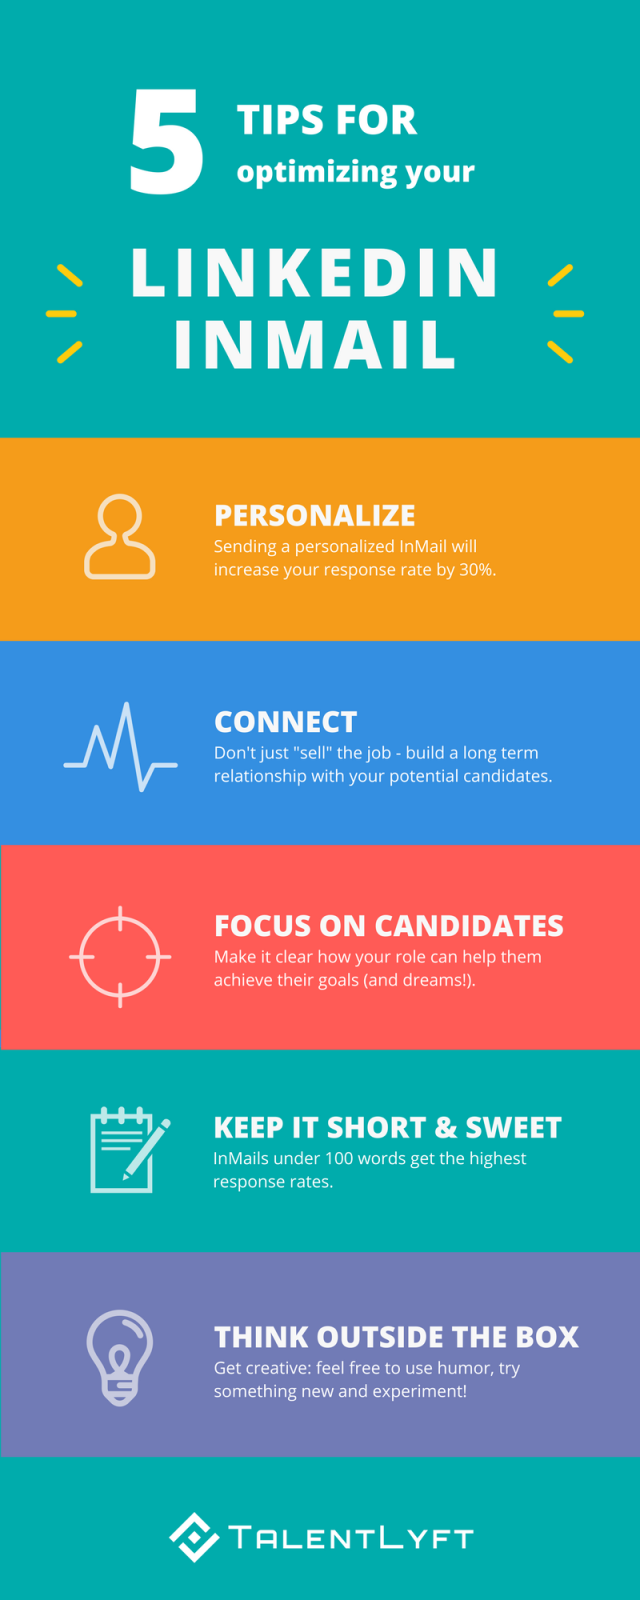 5-tips-for-optimizing-your-LinkedIn-InMail.png